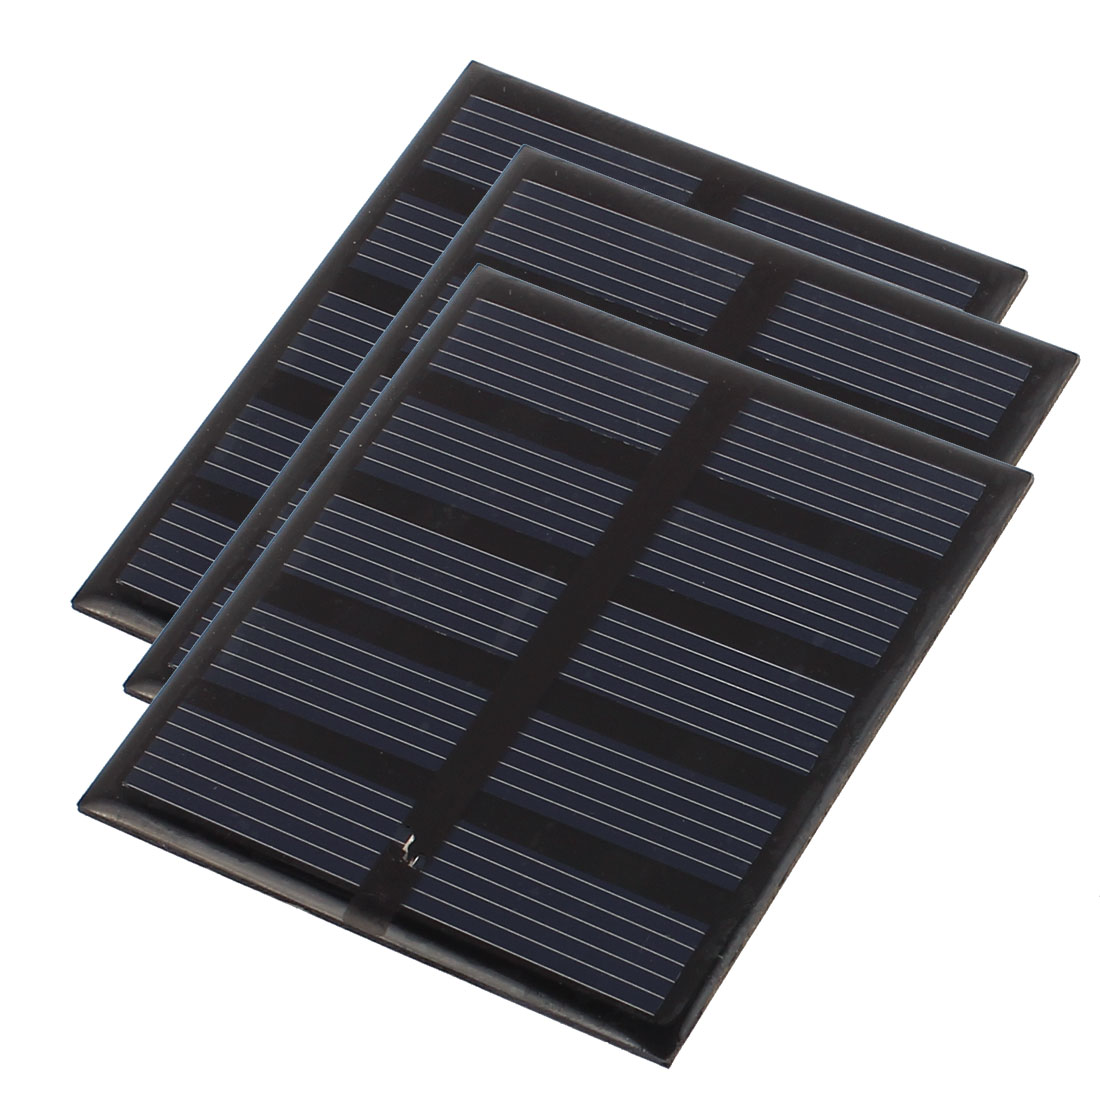 3Pcs DC 2.5V 200mA 0.5W Energy Saving Solar Cell Panel Module for Charger